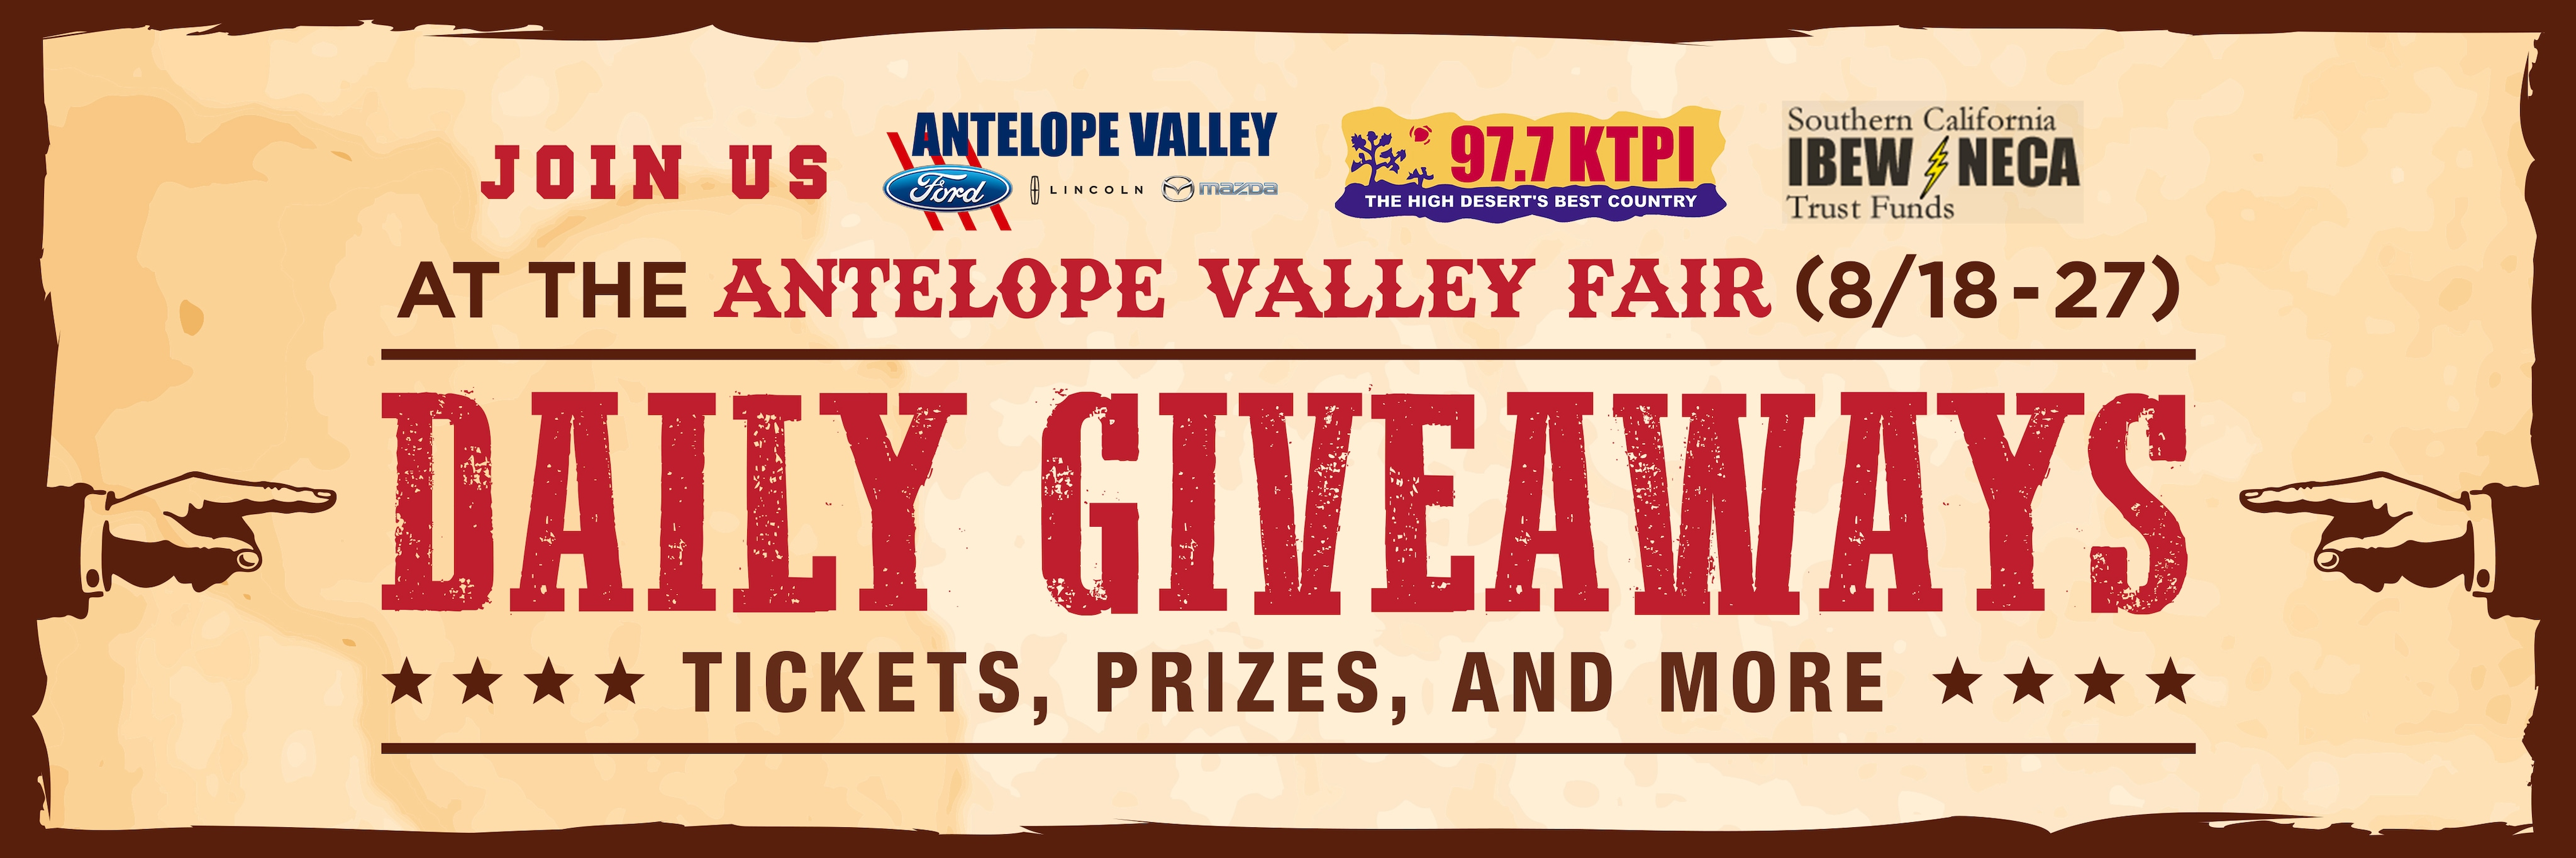 Join AV Ford Lincoln Mazda at the Antelope Valley Fair - Enter to Win Giveaways!!